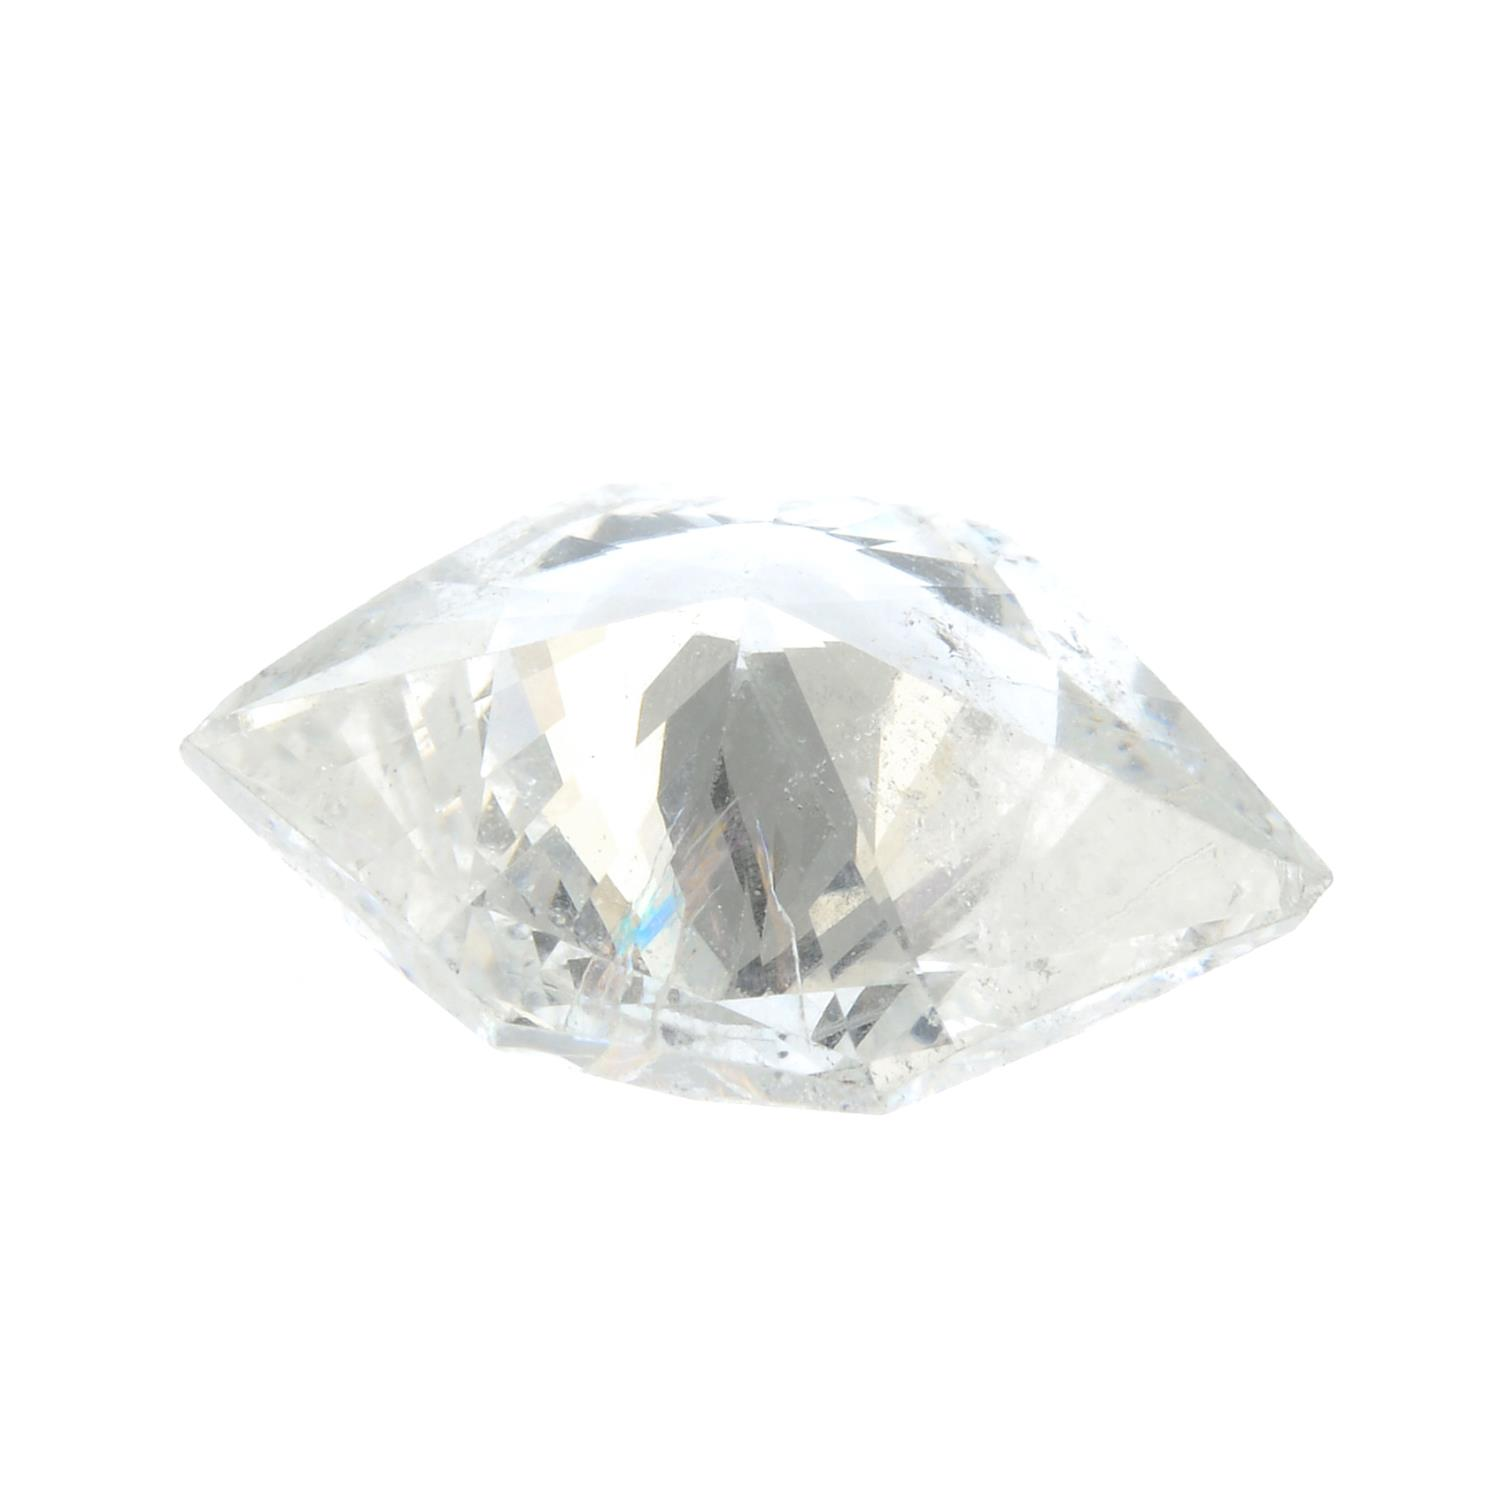 A fancy-shape diamond, weighing 0.92cts. - Image 2 of 2